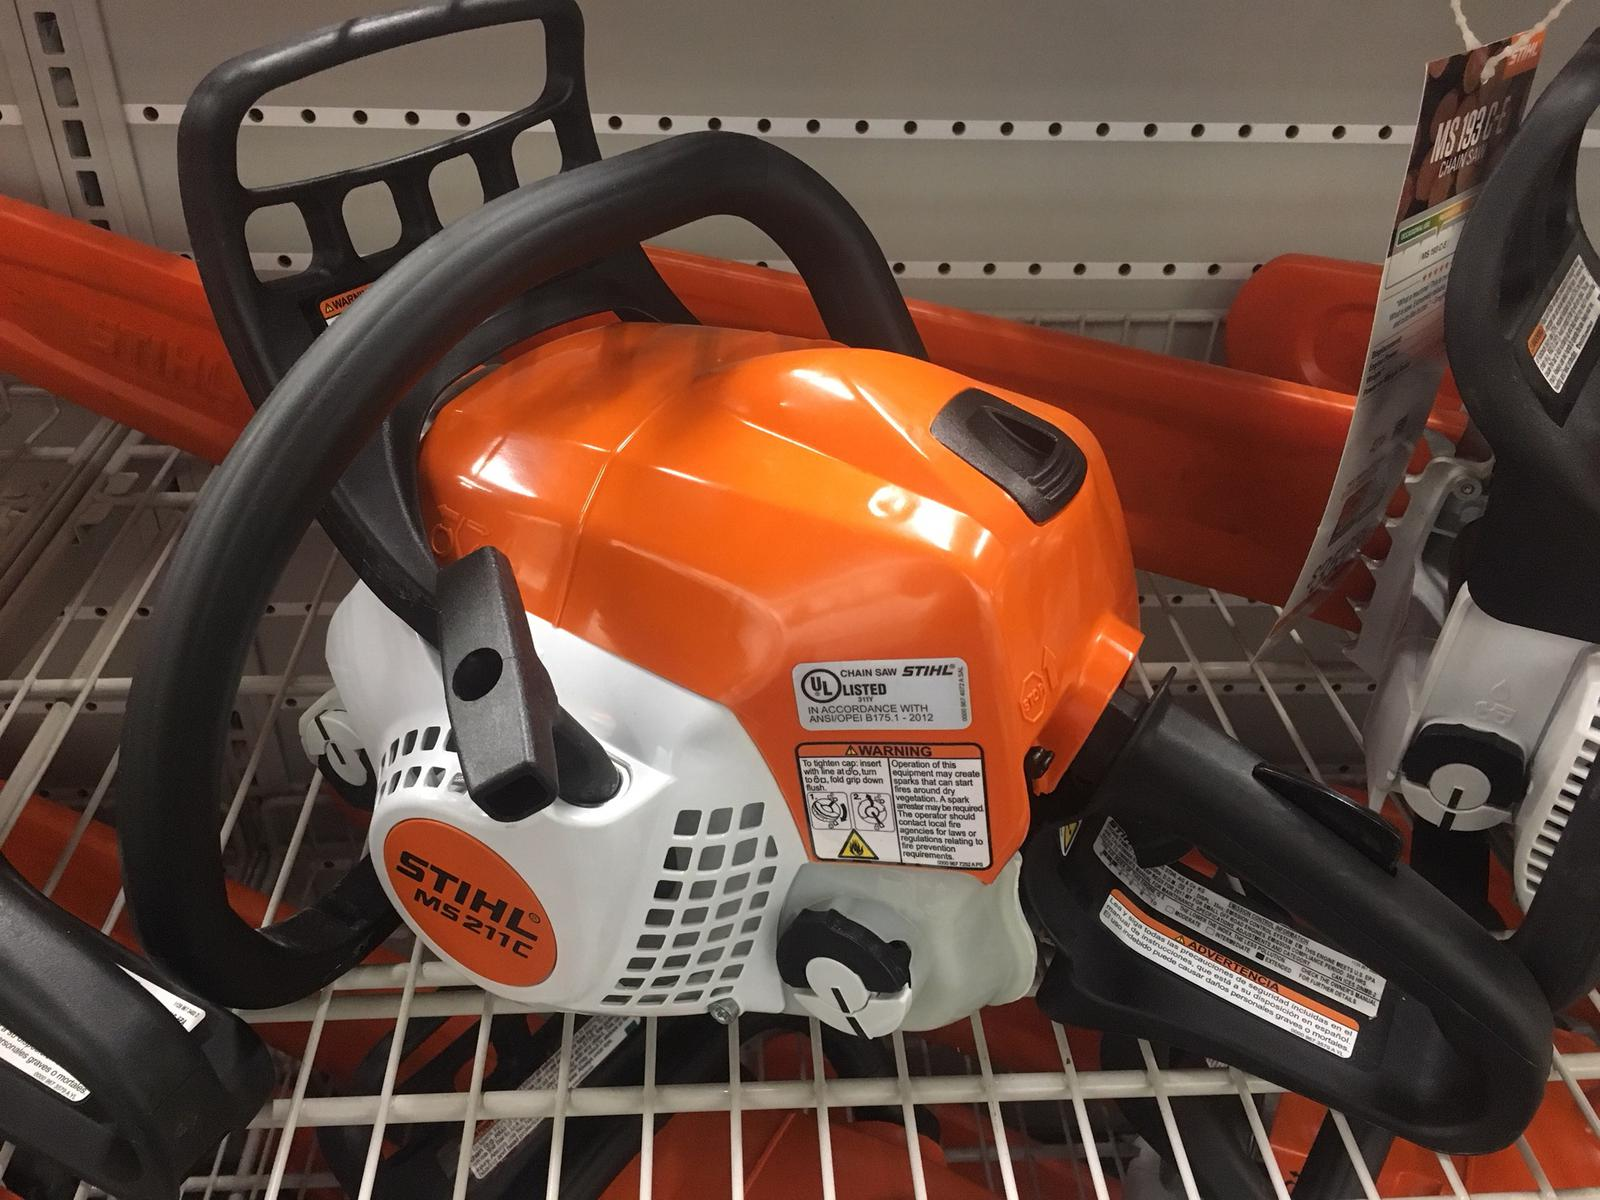 2018 stihl ms 211 c-be for sale in old saybrook, ct. new england